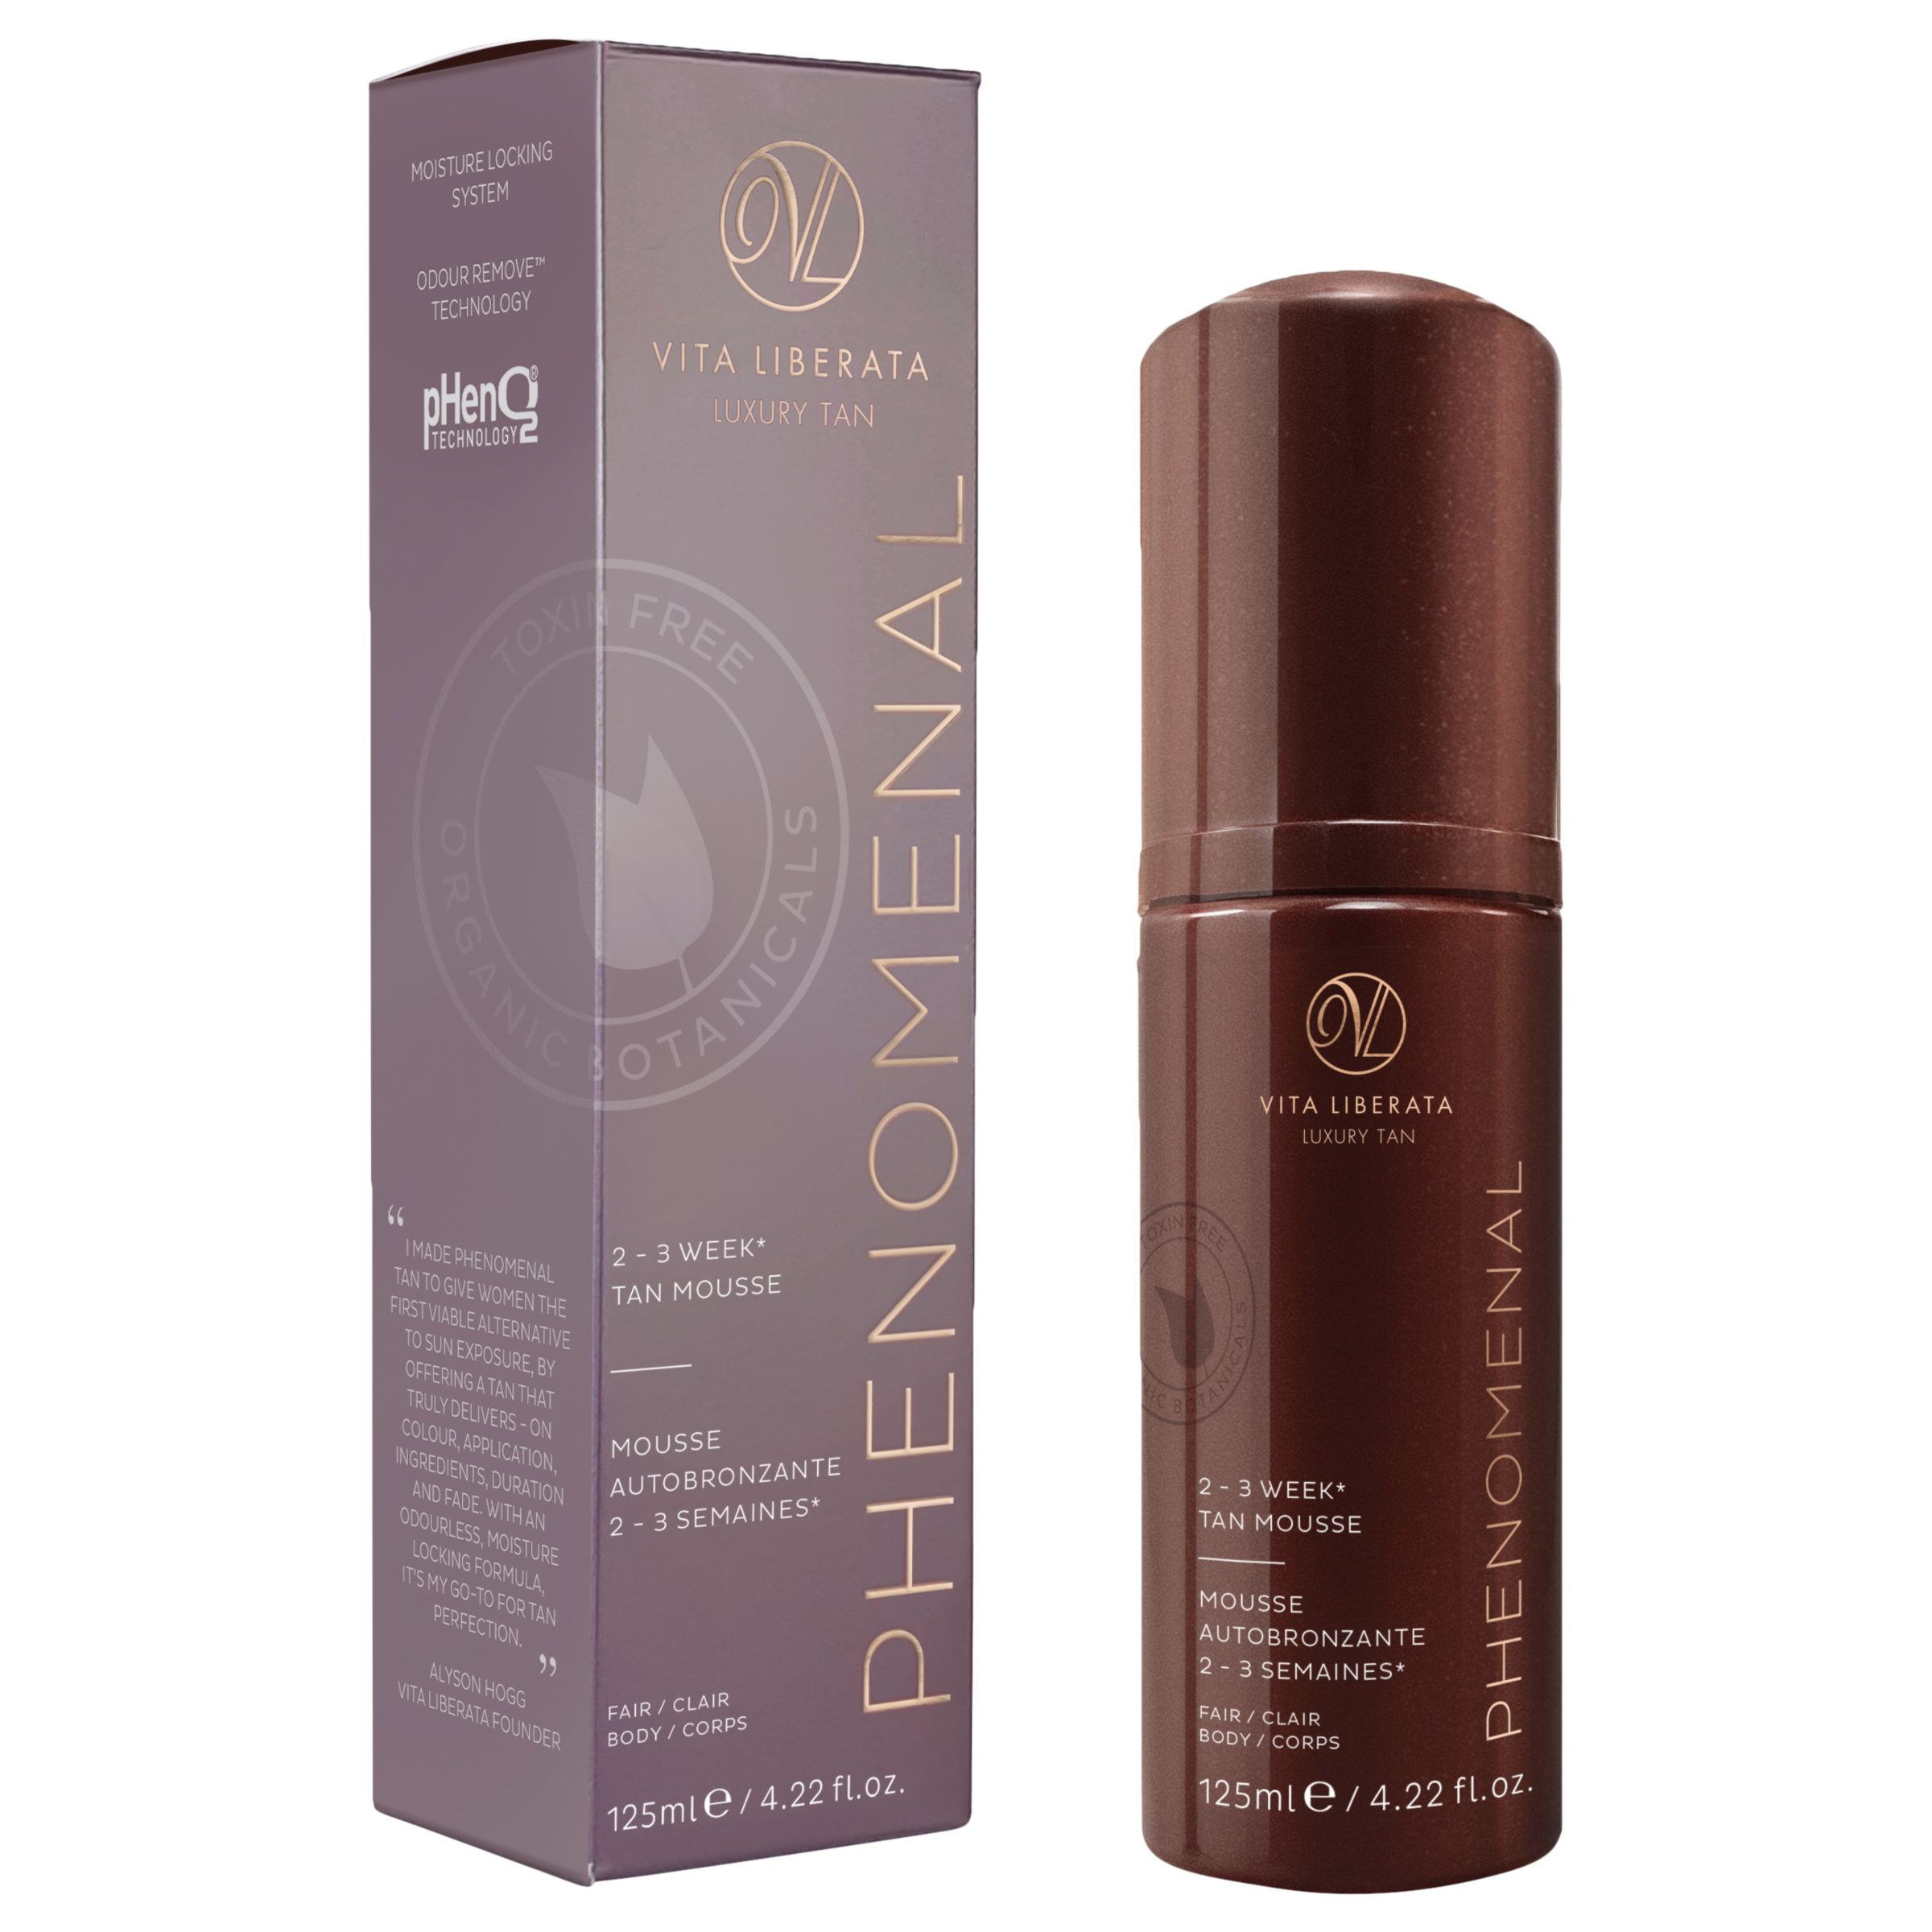 Vita Liberata Vita Liberata pHenomenal 2-3 Week Tan Mousse